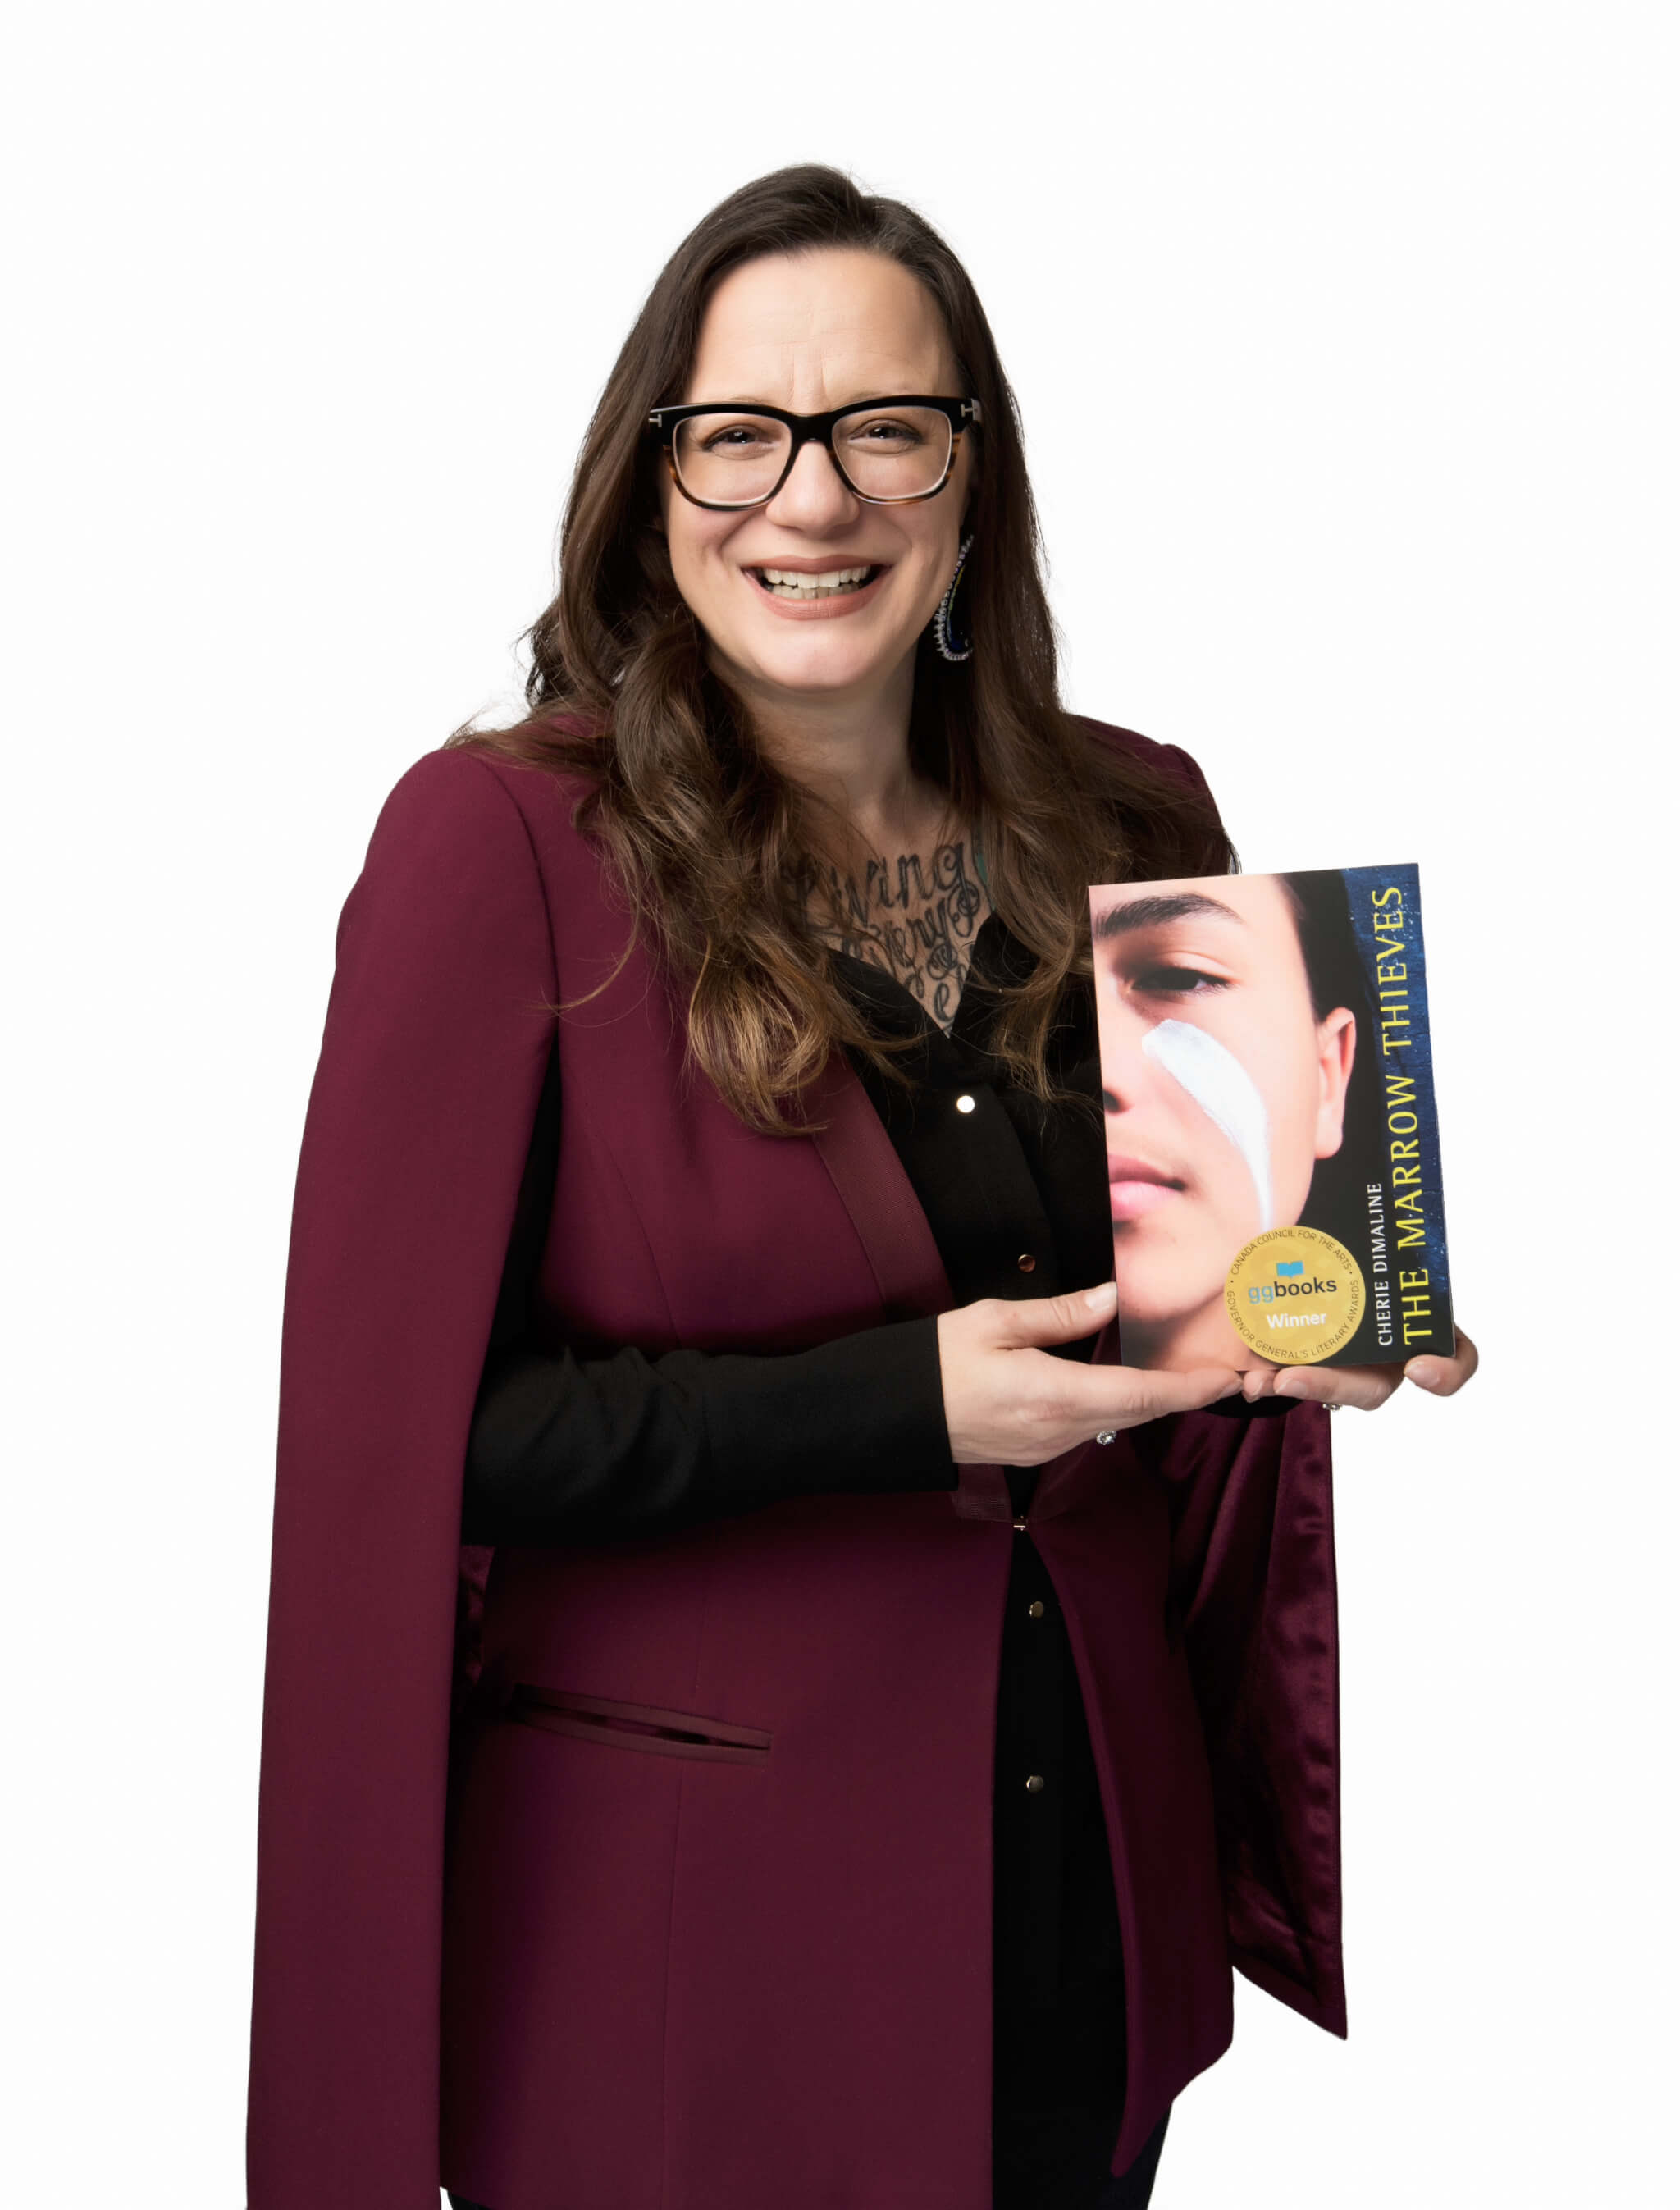 Cherie Dimaline holding The Marrow Thieves book